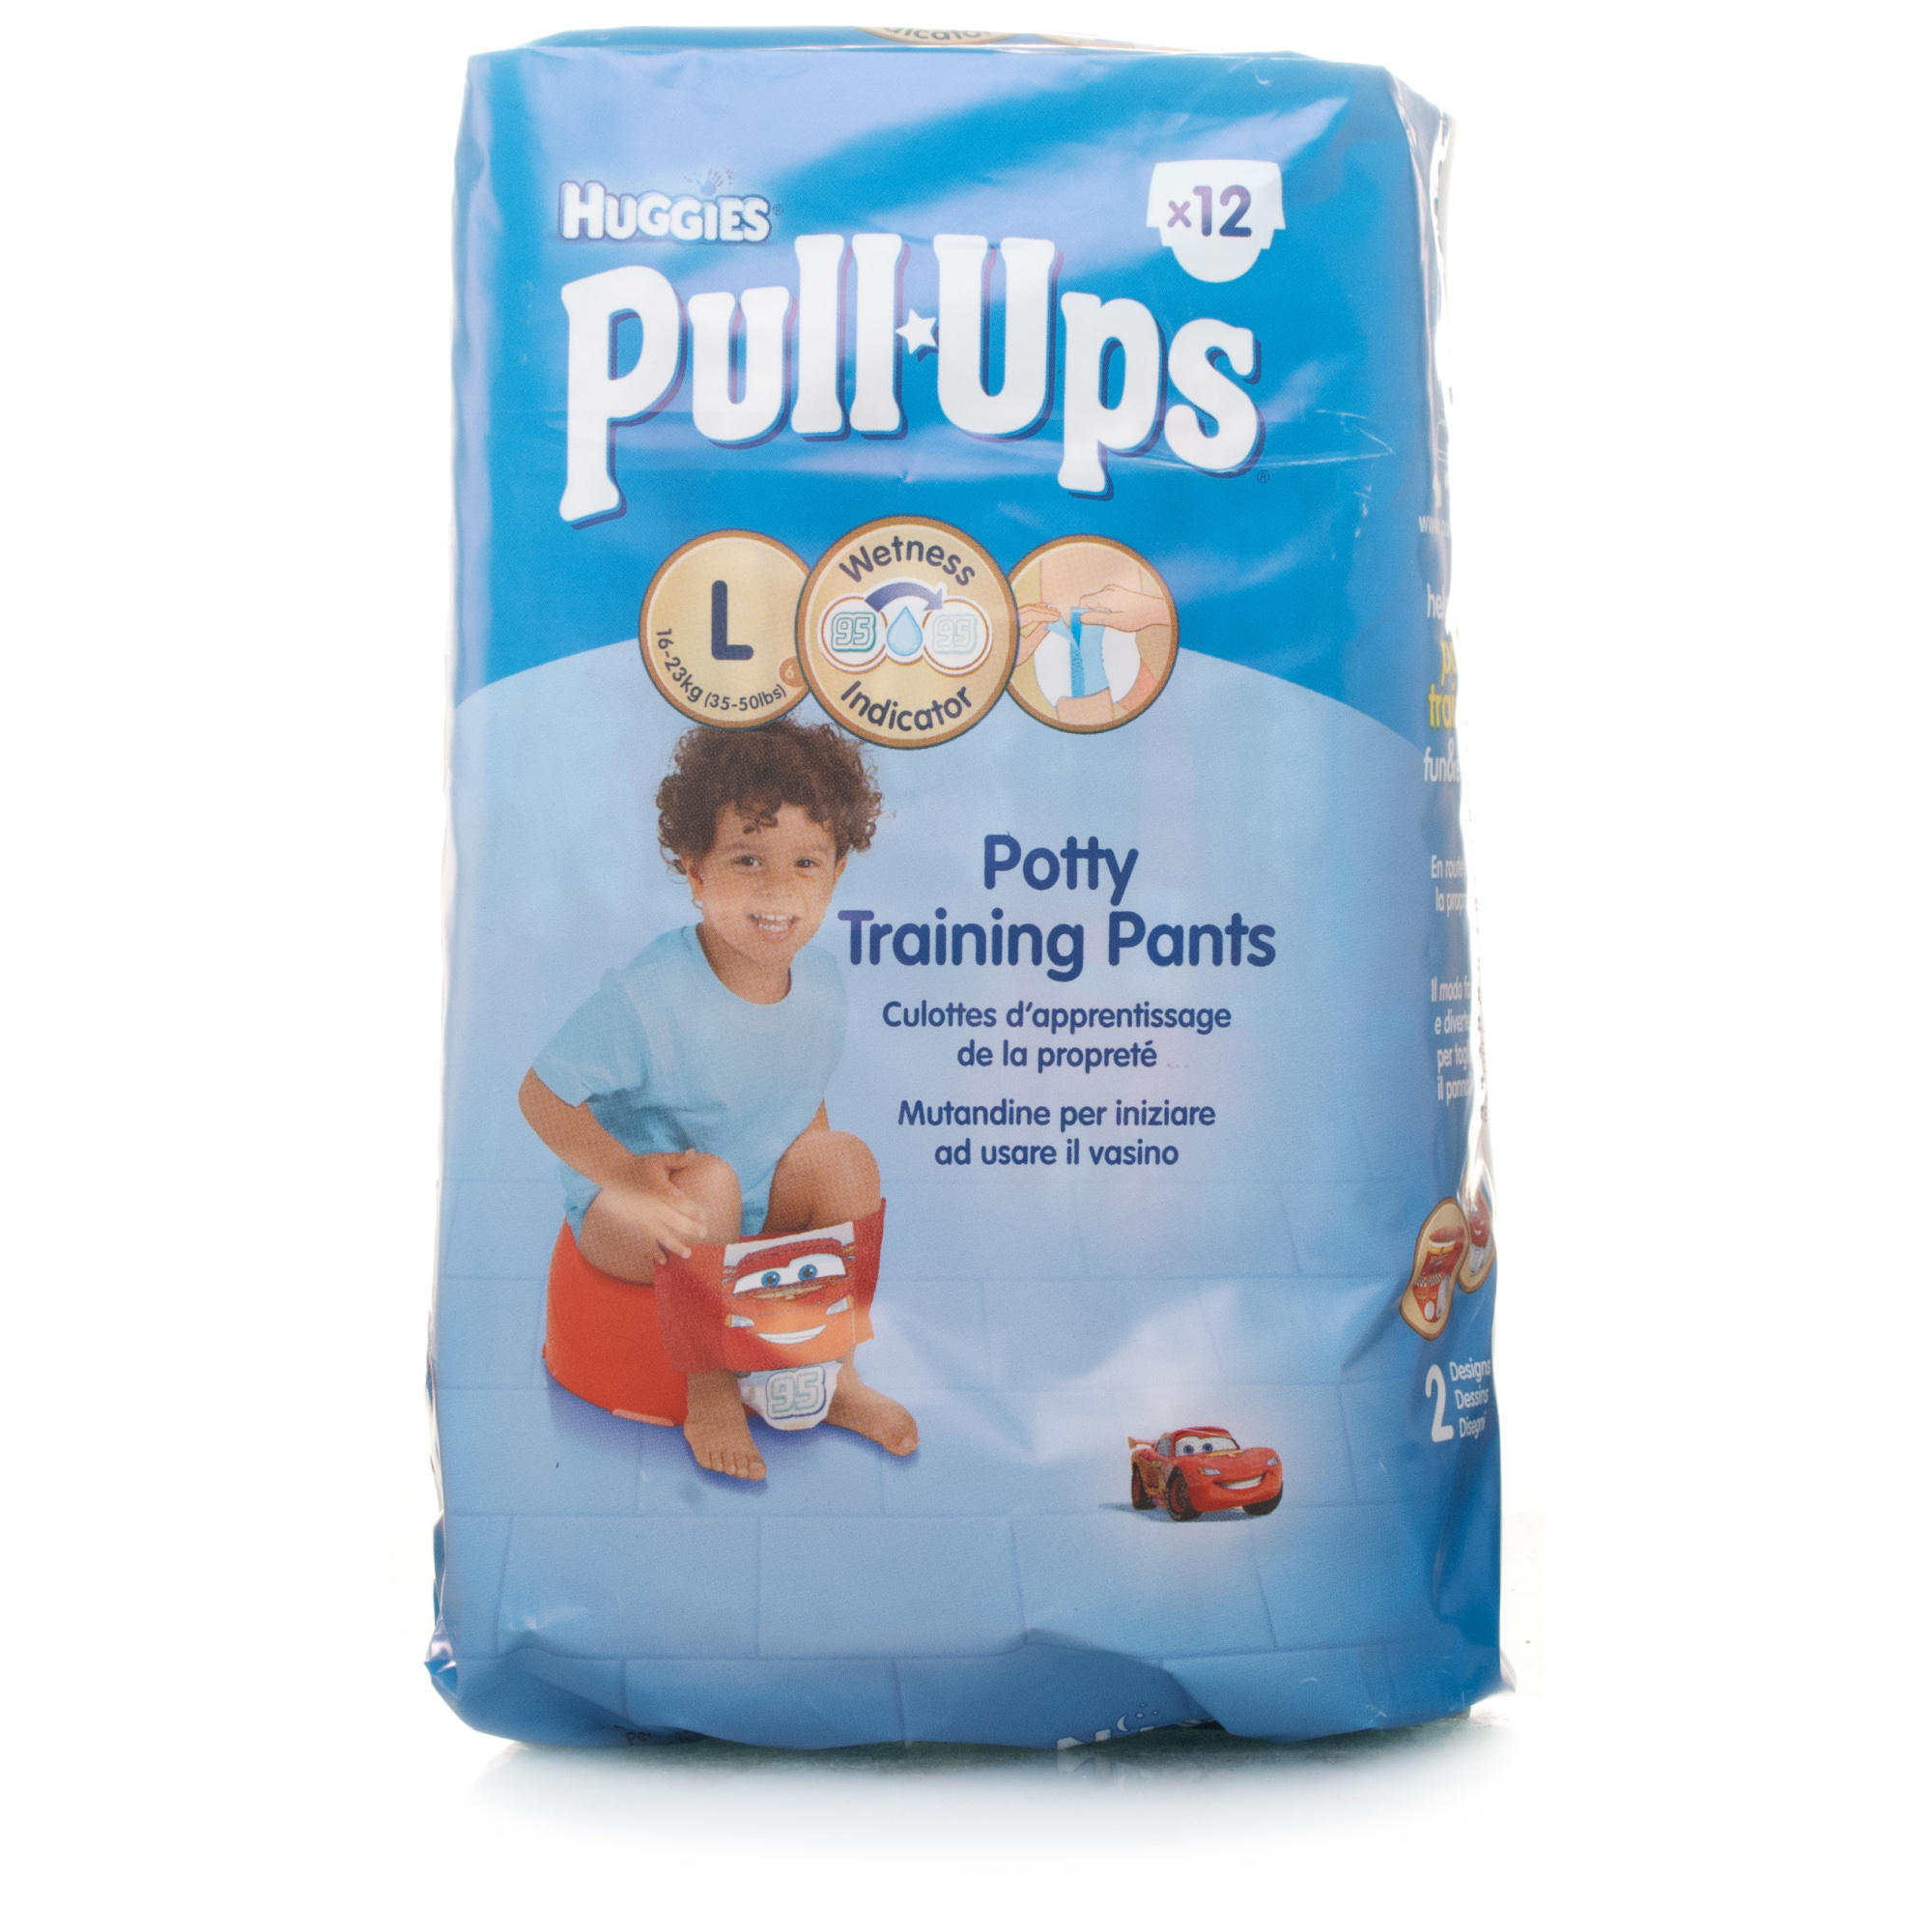 Help make your potty training experience easier* with Pull-Ups Learning Designs training pants. With great coverage, soft and stretchy sides, and zoned protection, Pull-Ups training pants give your child a comfortable fit and all-around protection, day and night.